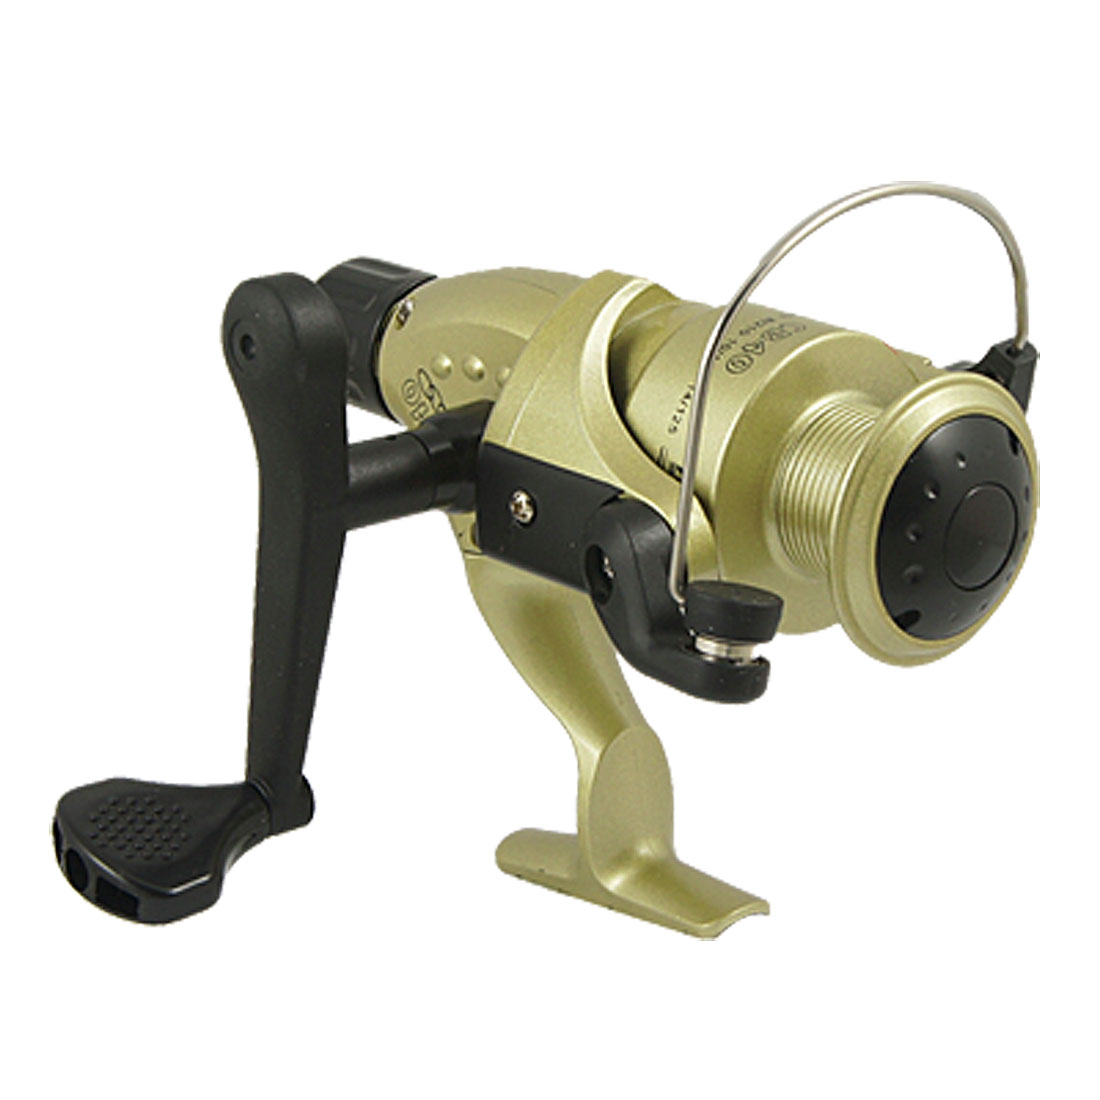 Gear Ratio 5.1:1 Fishing Spinning Reel Reels Gold Tone